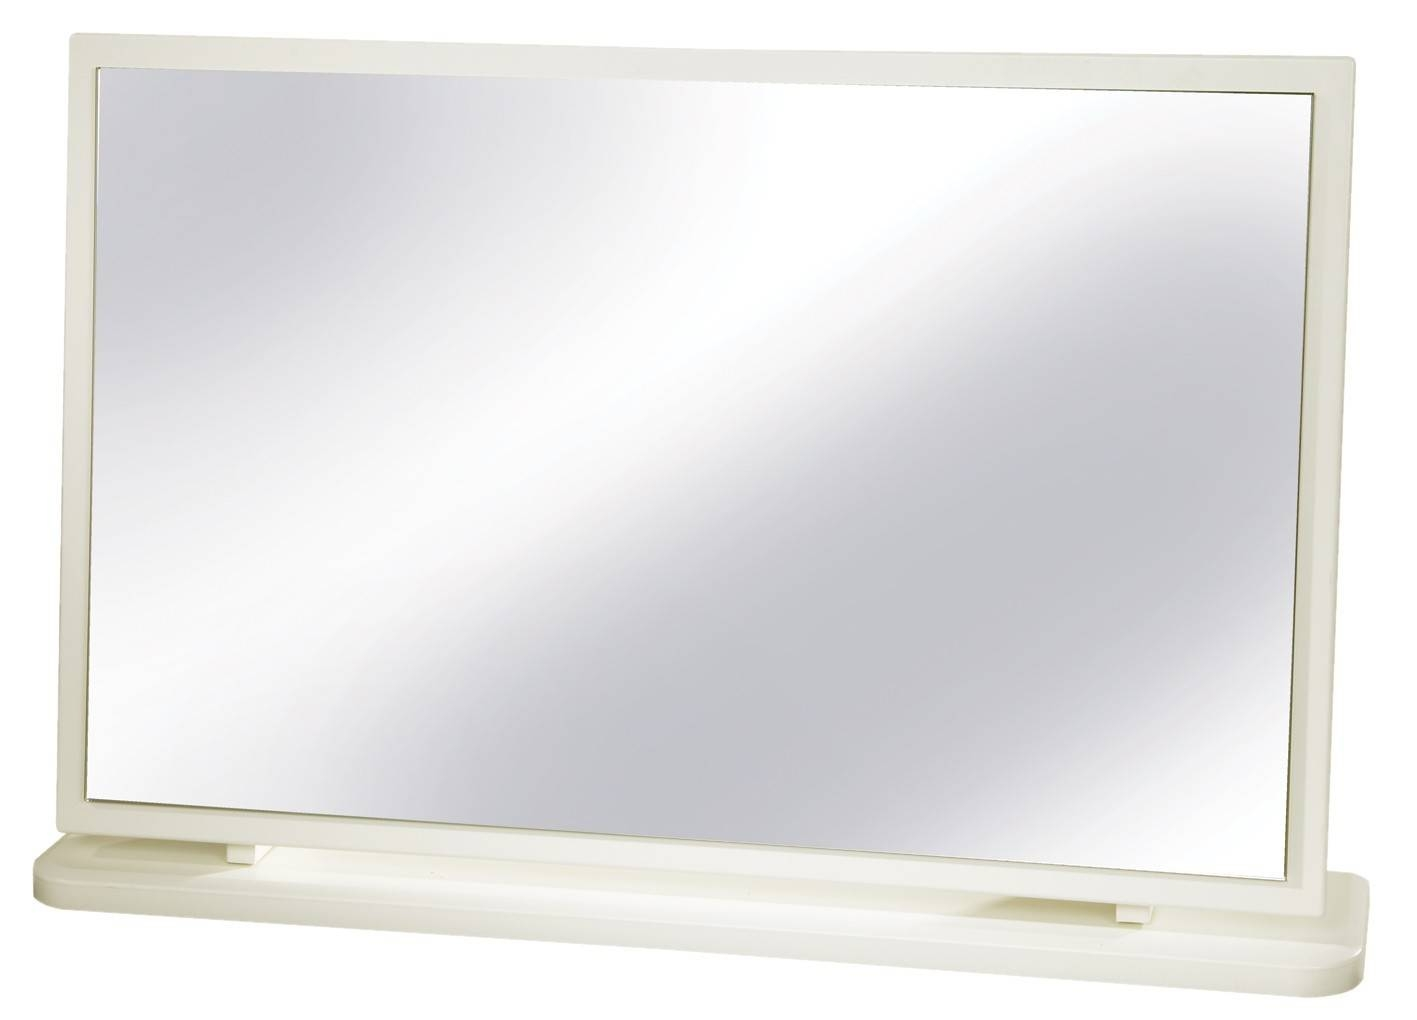 Fine Dressing Table Mirror Grey And Design Ideas inside Dressing Table Mirrors (Image 15 of 25)